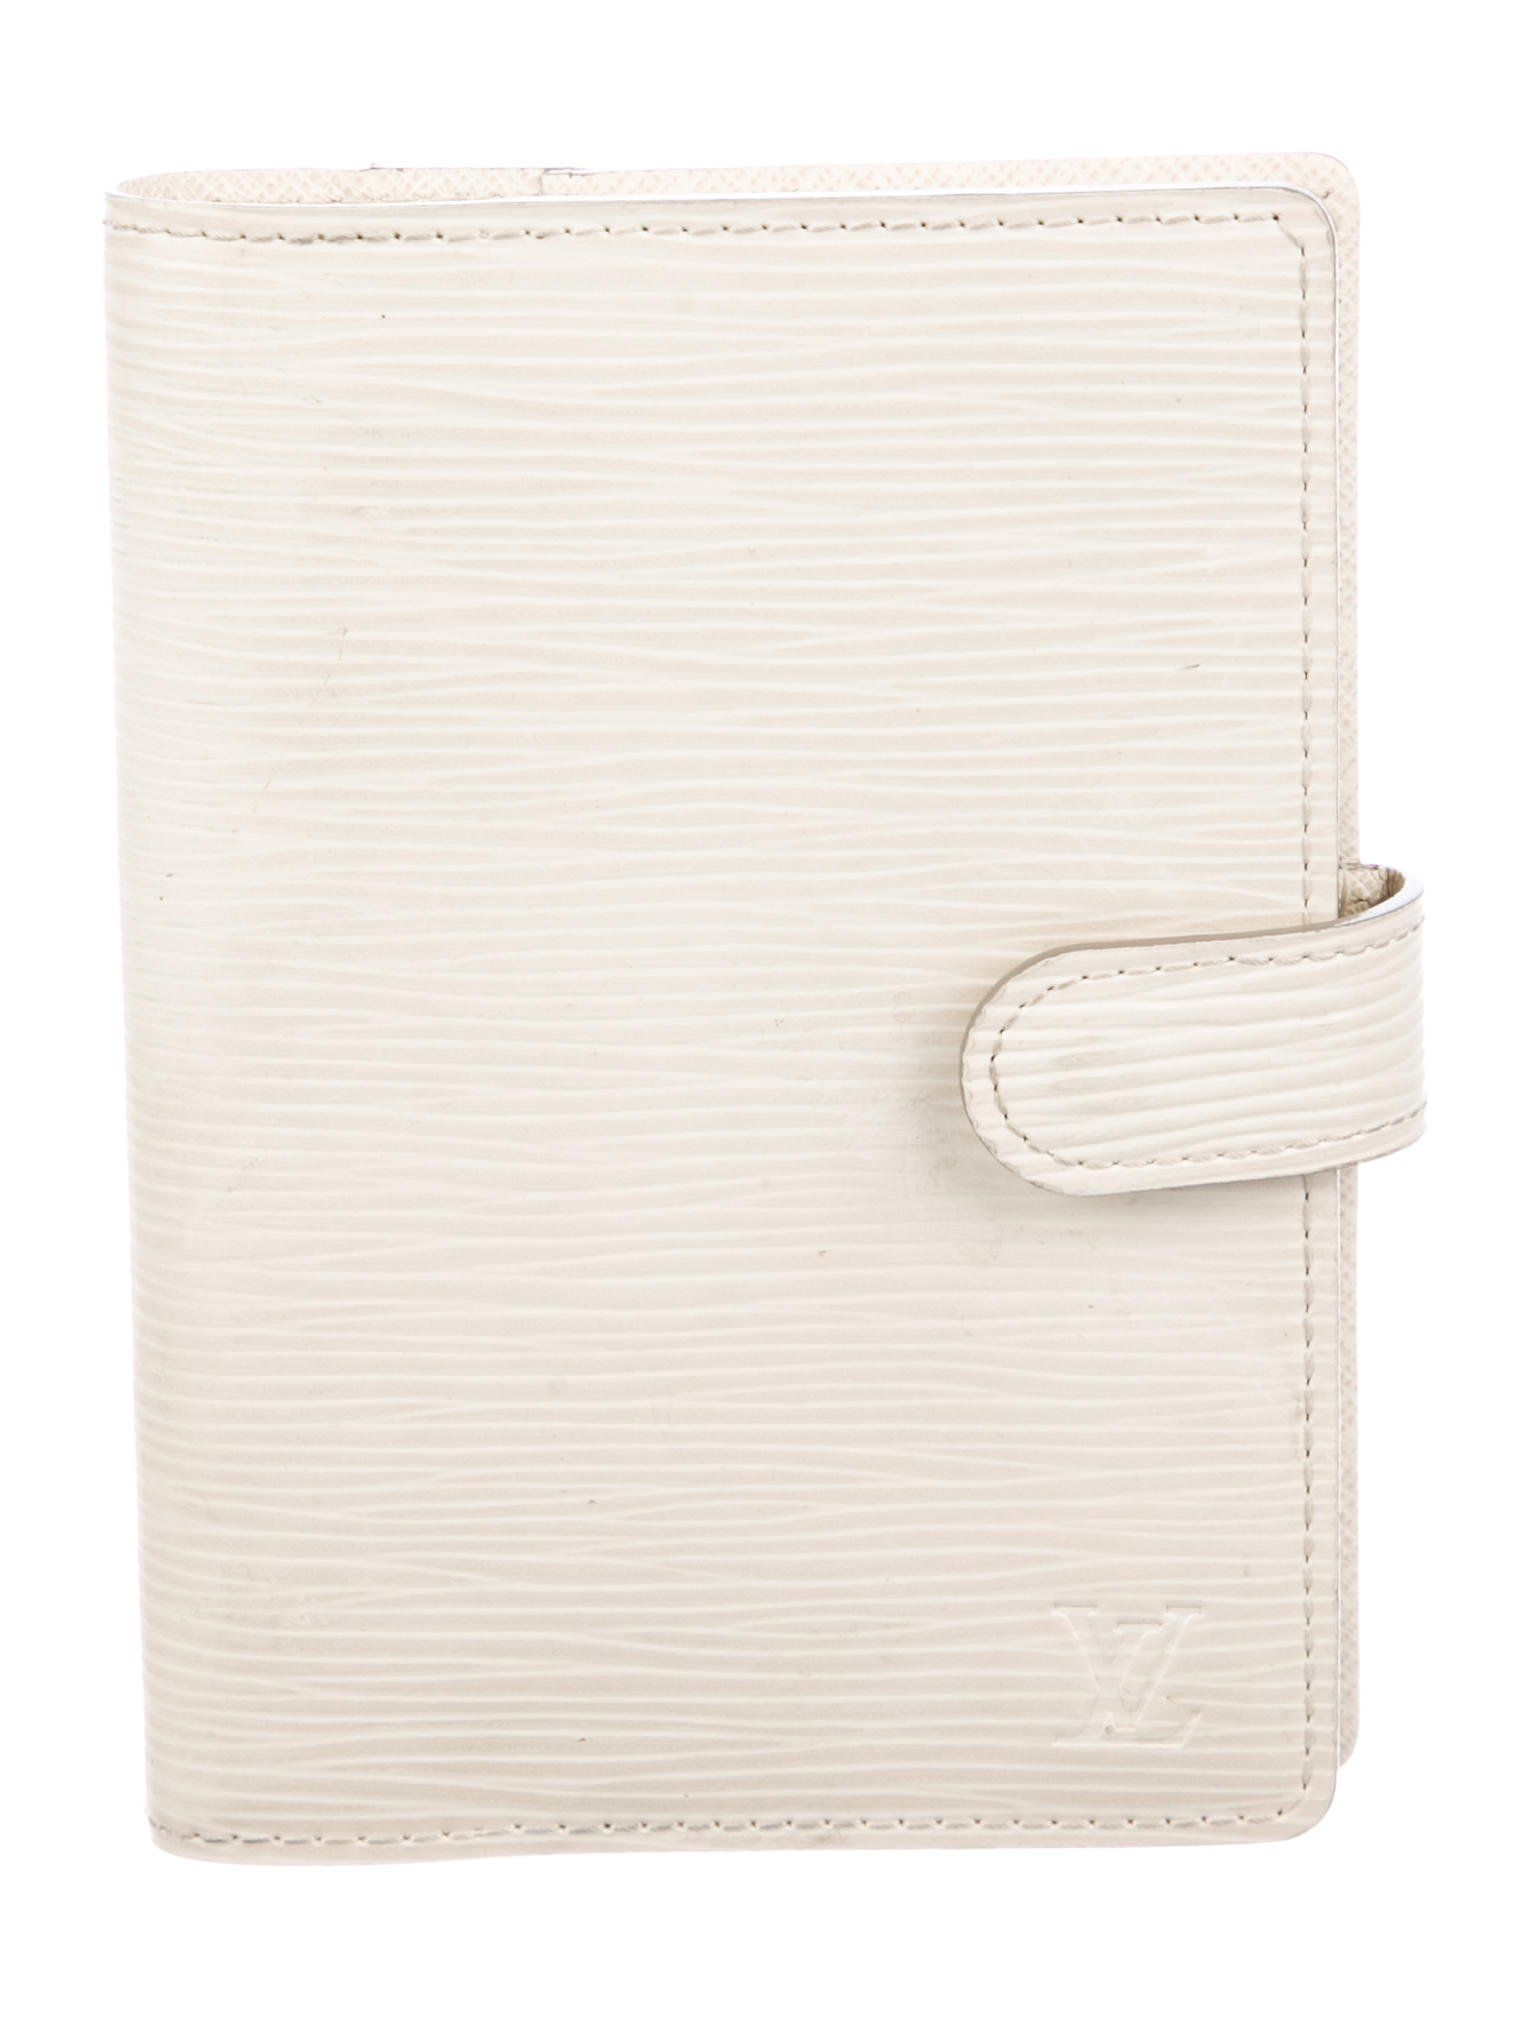 303cd293de2a3 Ivory Epi leather Louis Vuitton small ring agenda cover with 3 card slots